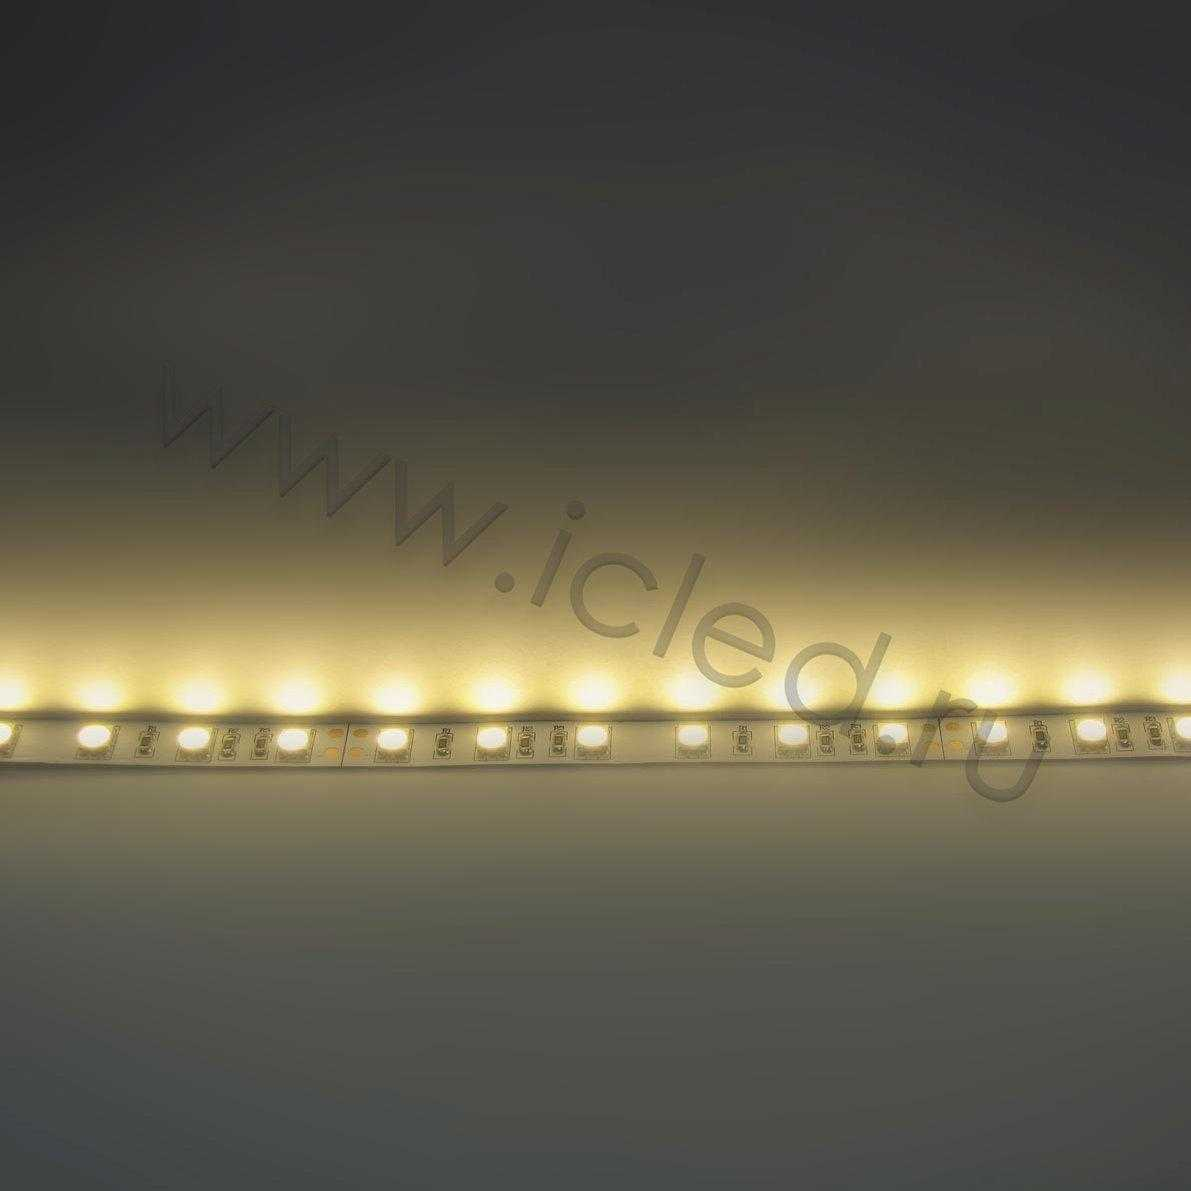 Светодиодная лента  Standart PRO class, 5050, 60led/m, Warm White, 24V, IP33